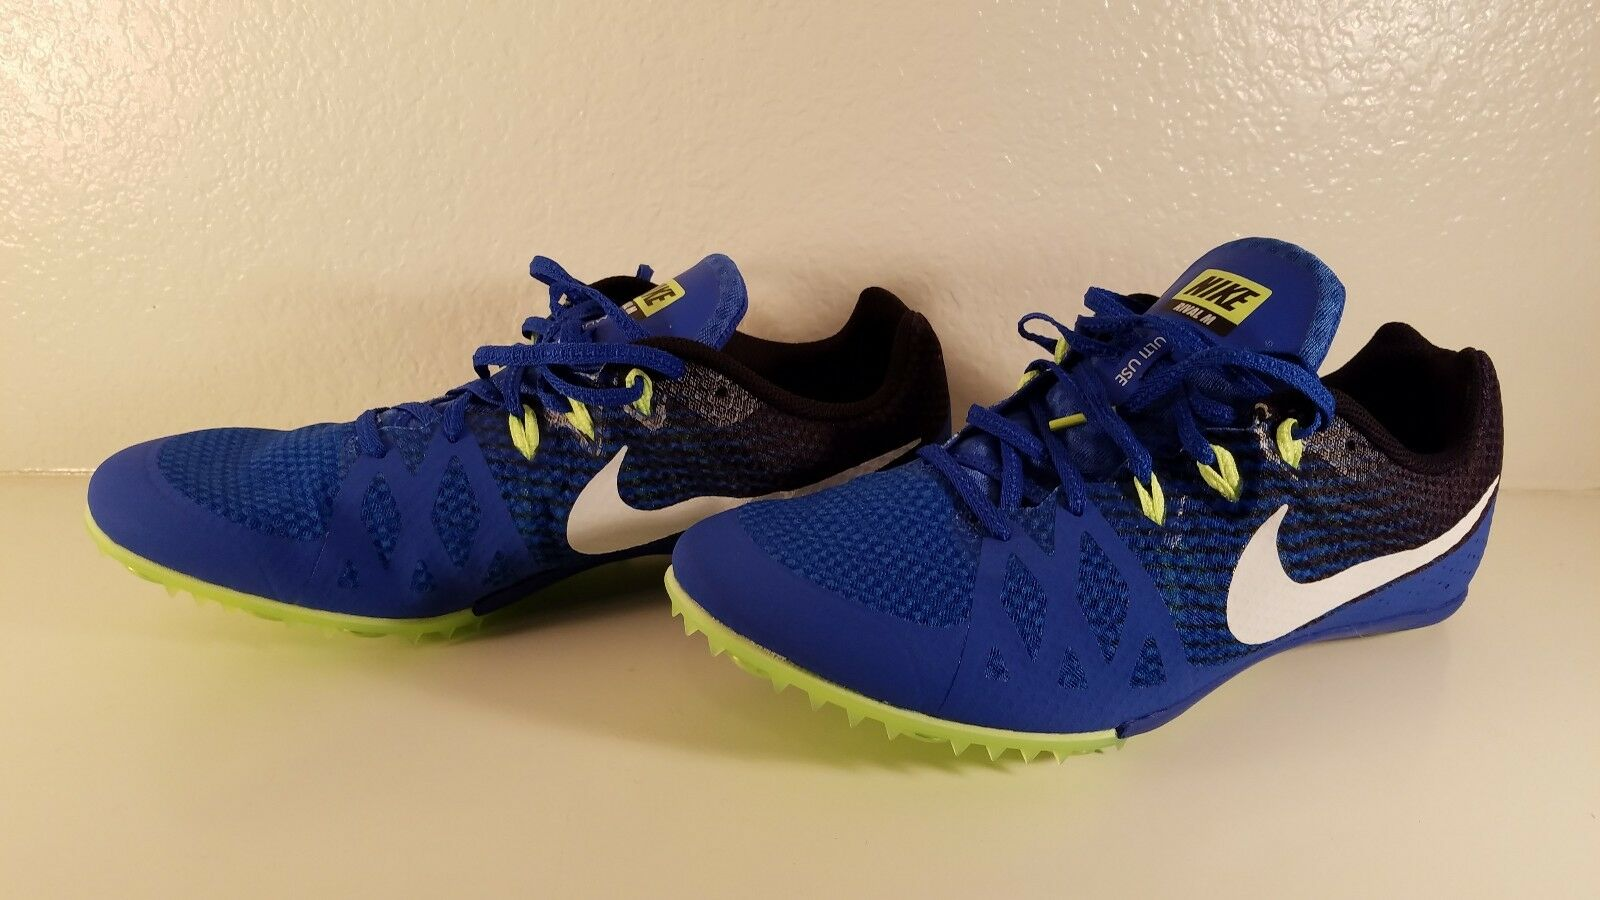 9aea413c5f9d1 Nike Nike Nike Men s Zoom Rival M 8 Track Spike Shoes Cleats Hyper Cobolt  Blue Size